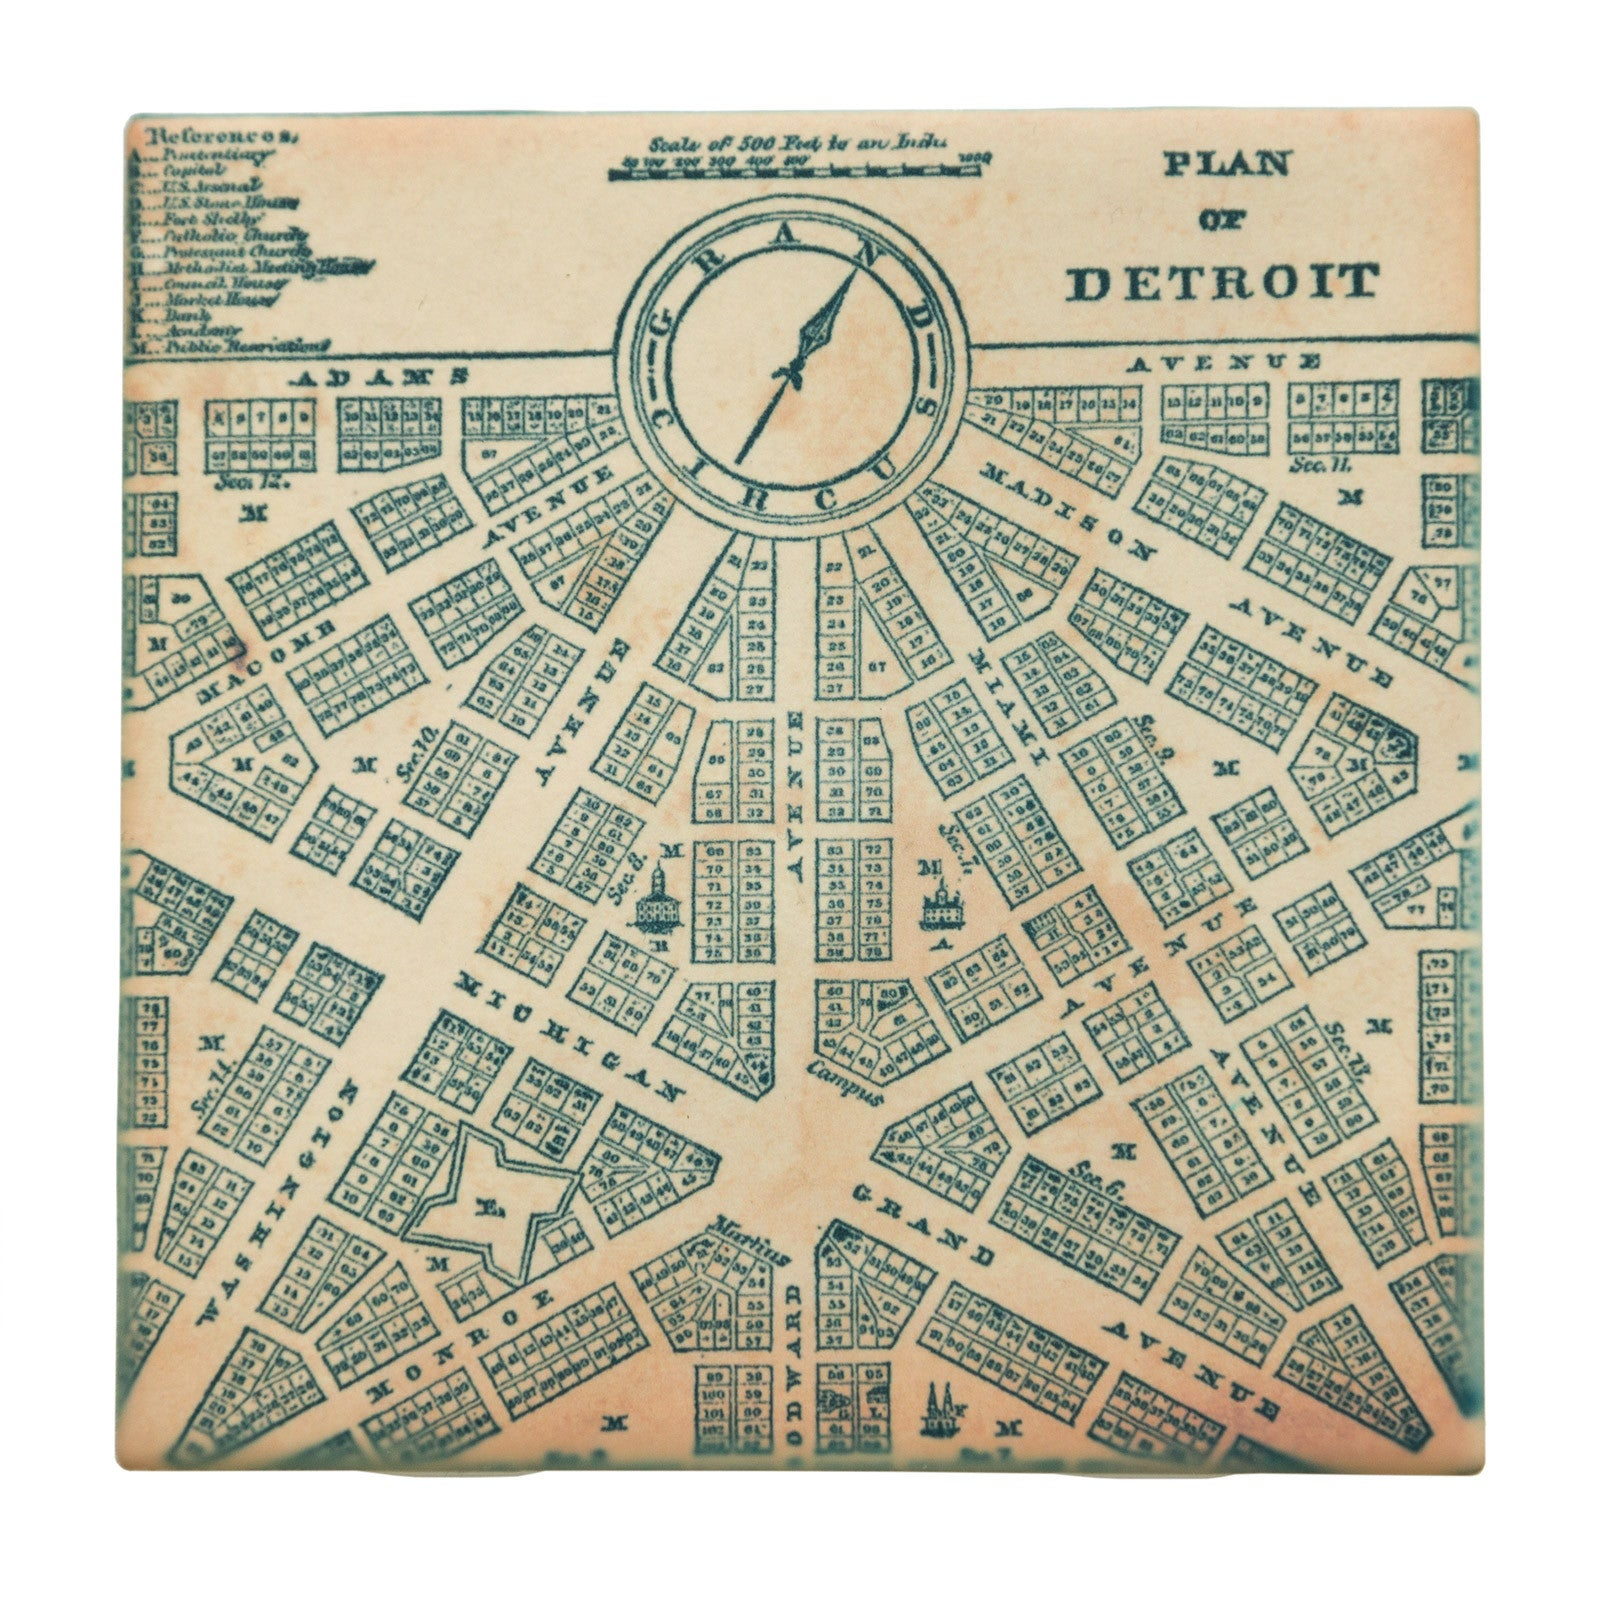 Detroit Map on st louis on map, chicago map, michigan map, great lakes map, baltimore map, new york map, quebec map, duluth map, cincinnati map, pittsburgh map, usa map, henry ford hospital map, royal oak map, atlanta map, toronto map, memphis map, las vegas map, united states map, compton map, highland park map,